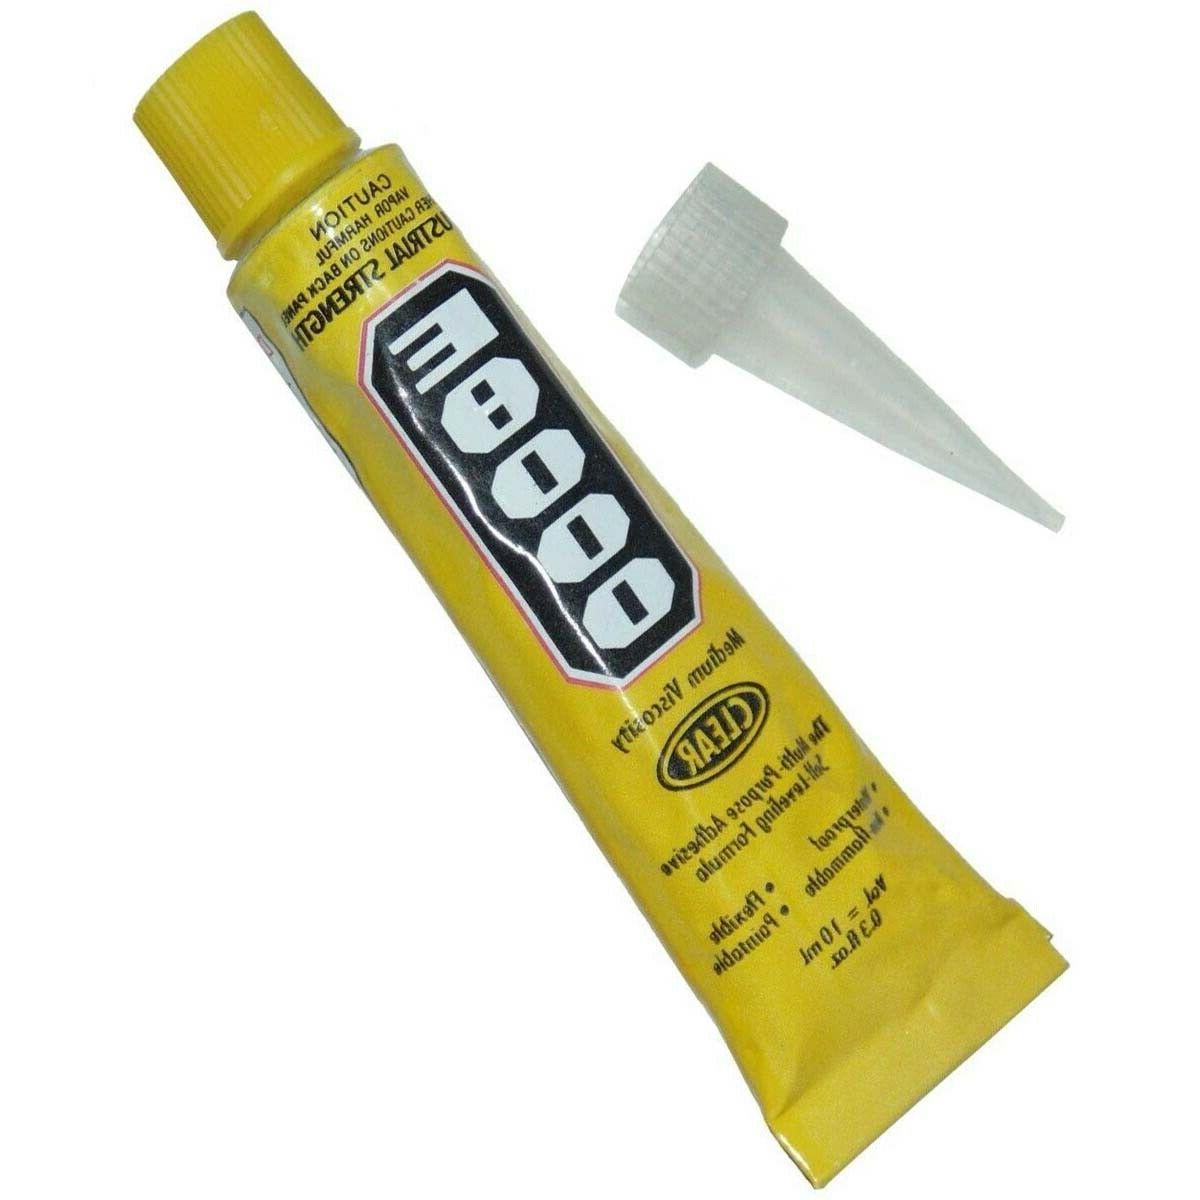 e8000 clear glue adhesive sealant waterproof